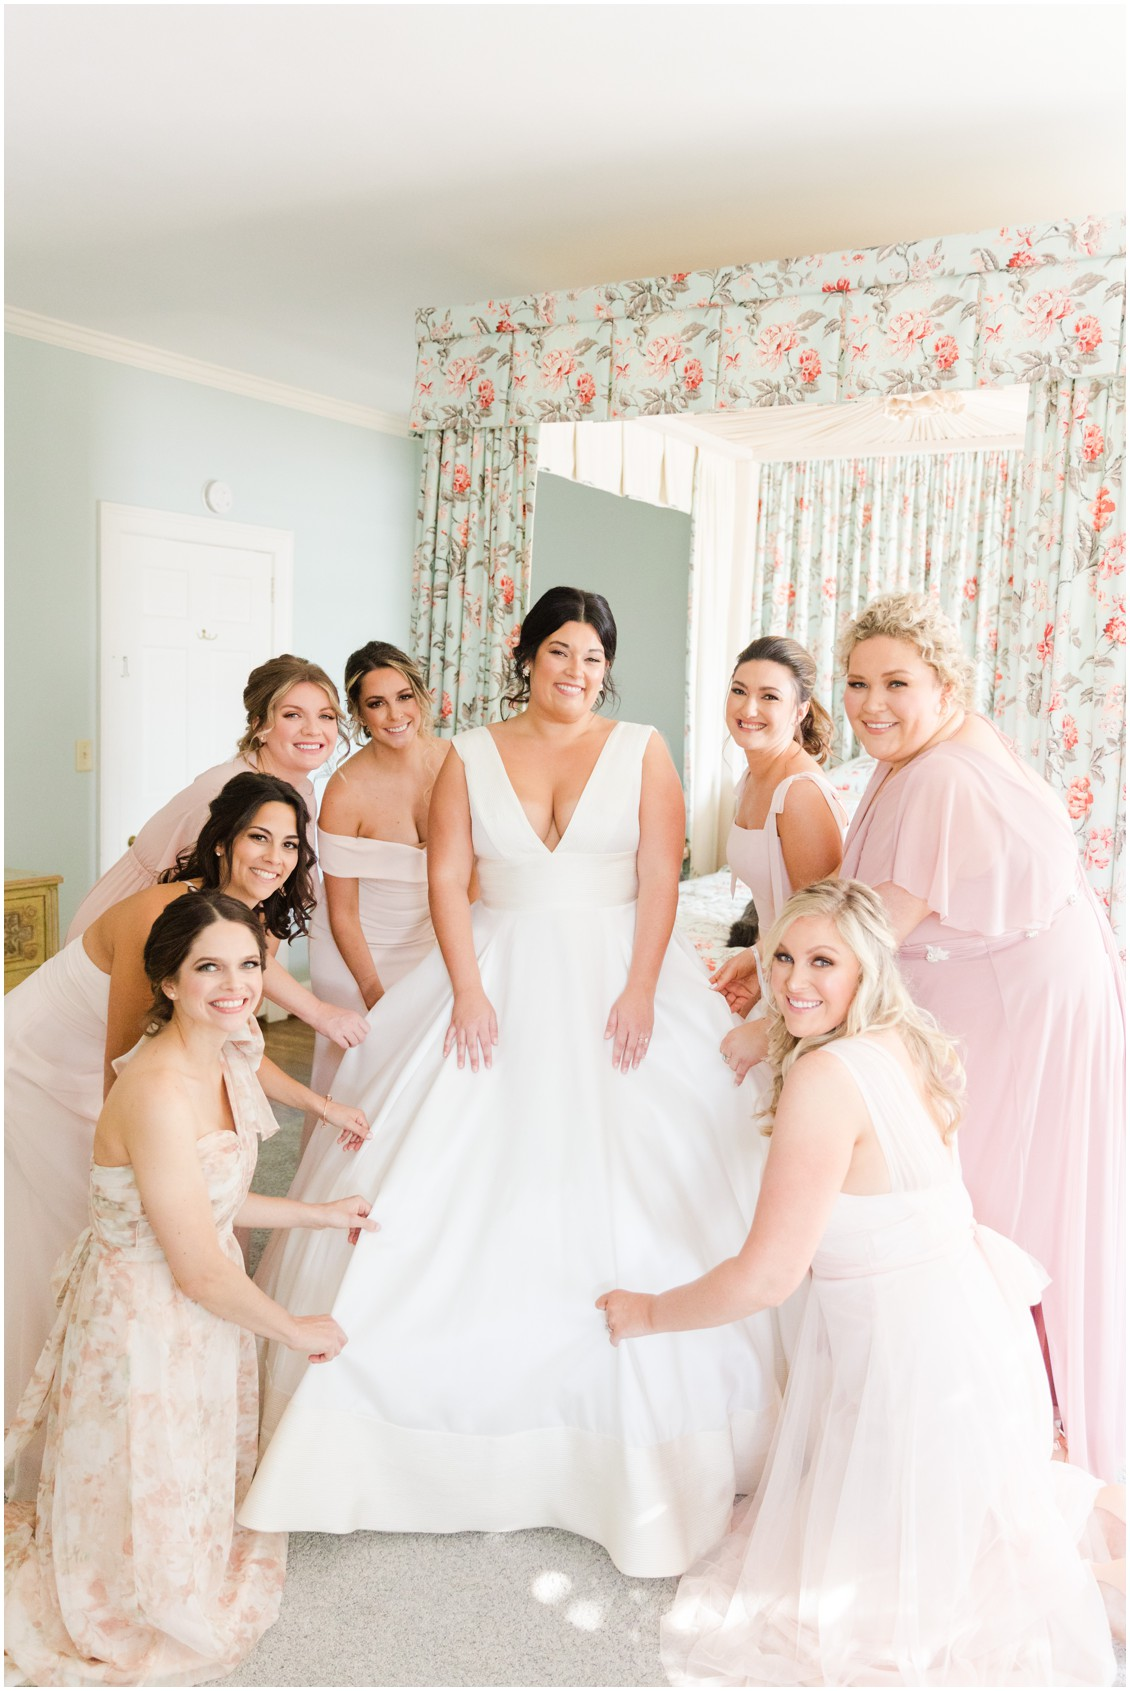 Bridesmaids and bride glam winter wedding | My Eastern Shore Wedding | Sherwood Florist